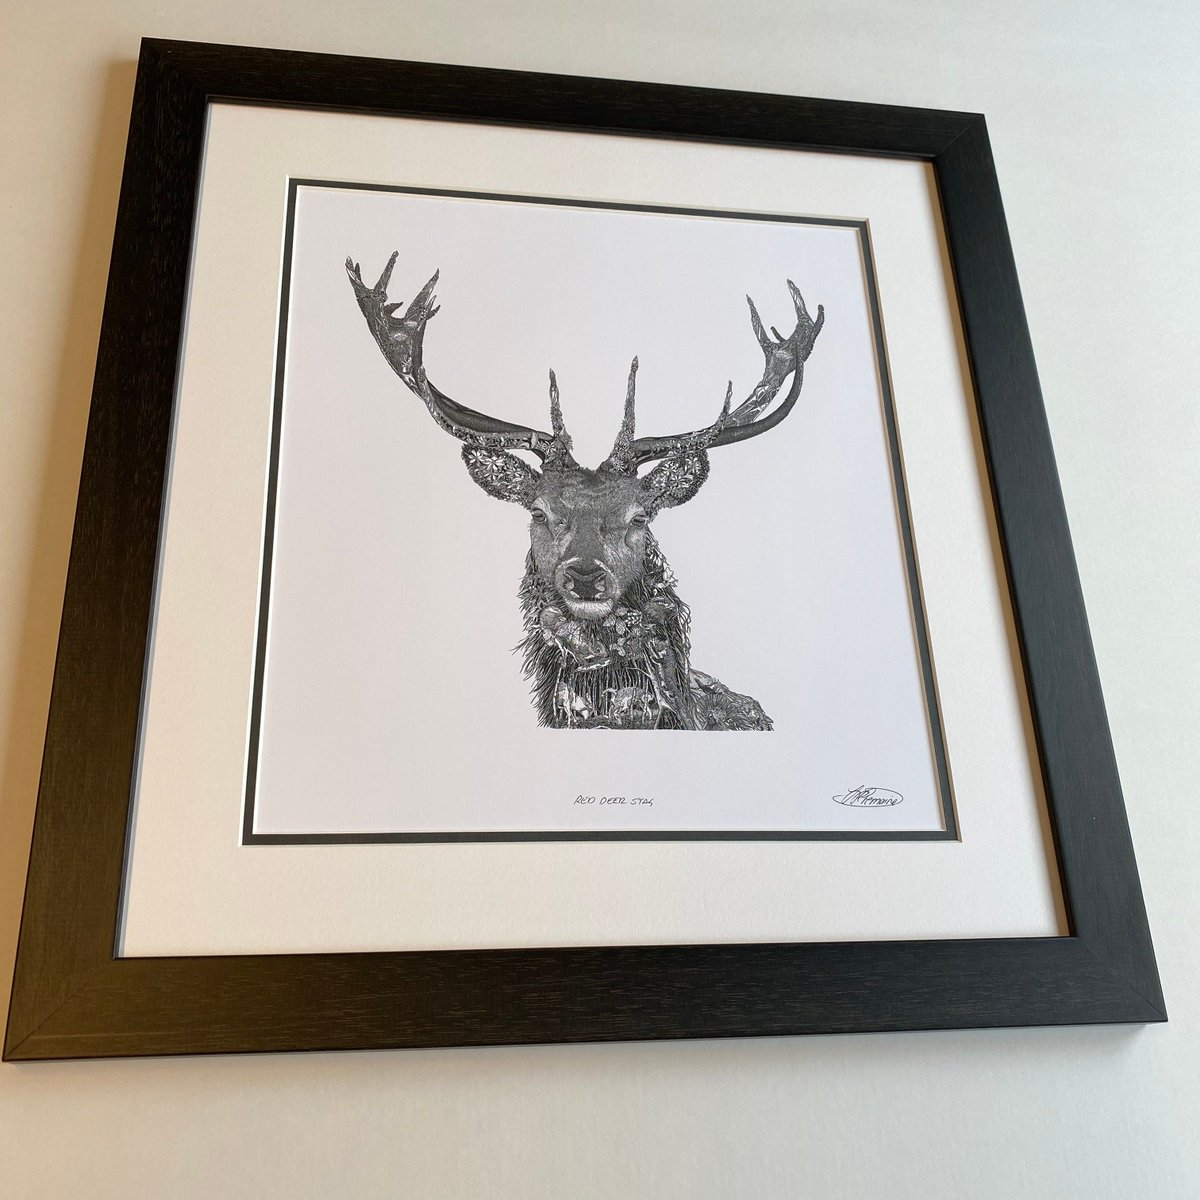 Another Jon Tremaine print framed. Our customer has begun a collection! The closer you look the more detail you see..  #framing #timberframing #pictureframing #custompictureframing #customframing #woodframing #bespokeframing #framingart #artframing #uckfield #sussex #wealdenpic.twitter.com/JPfLnzrsWY